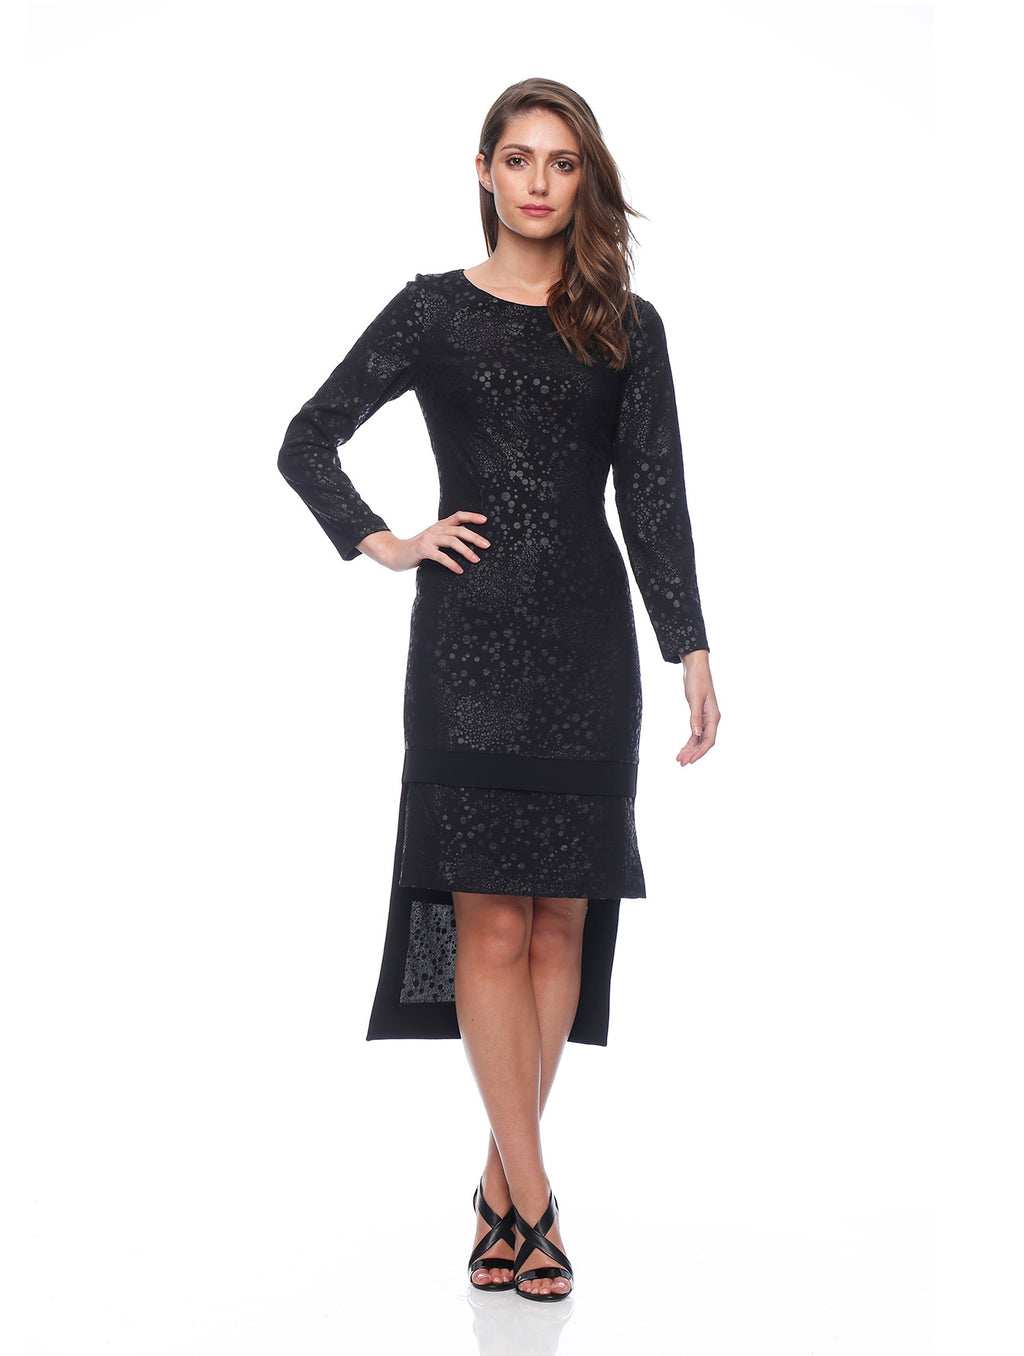 Sonia Long Sleeve Dress